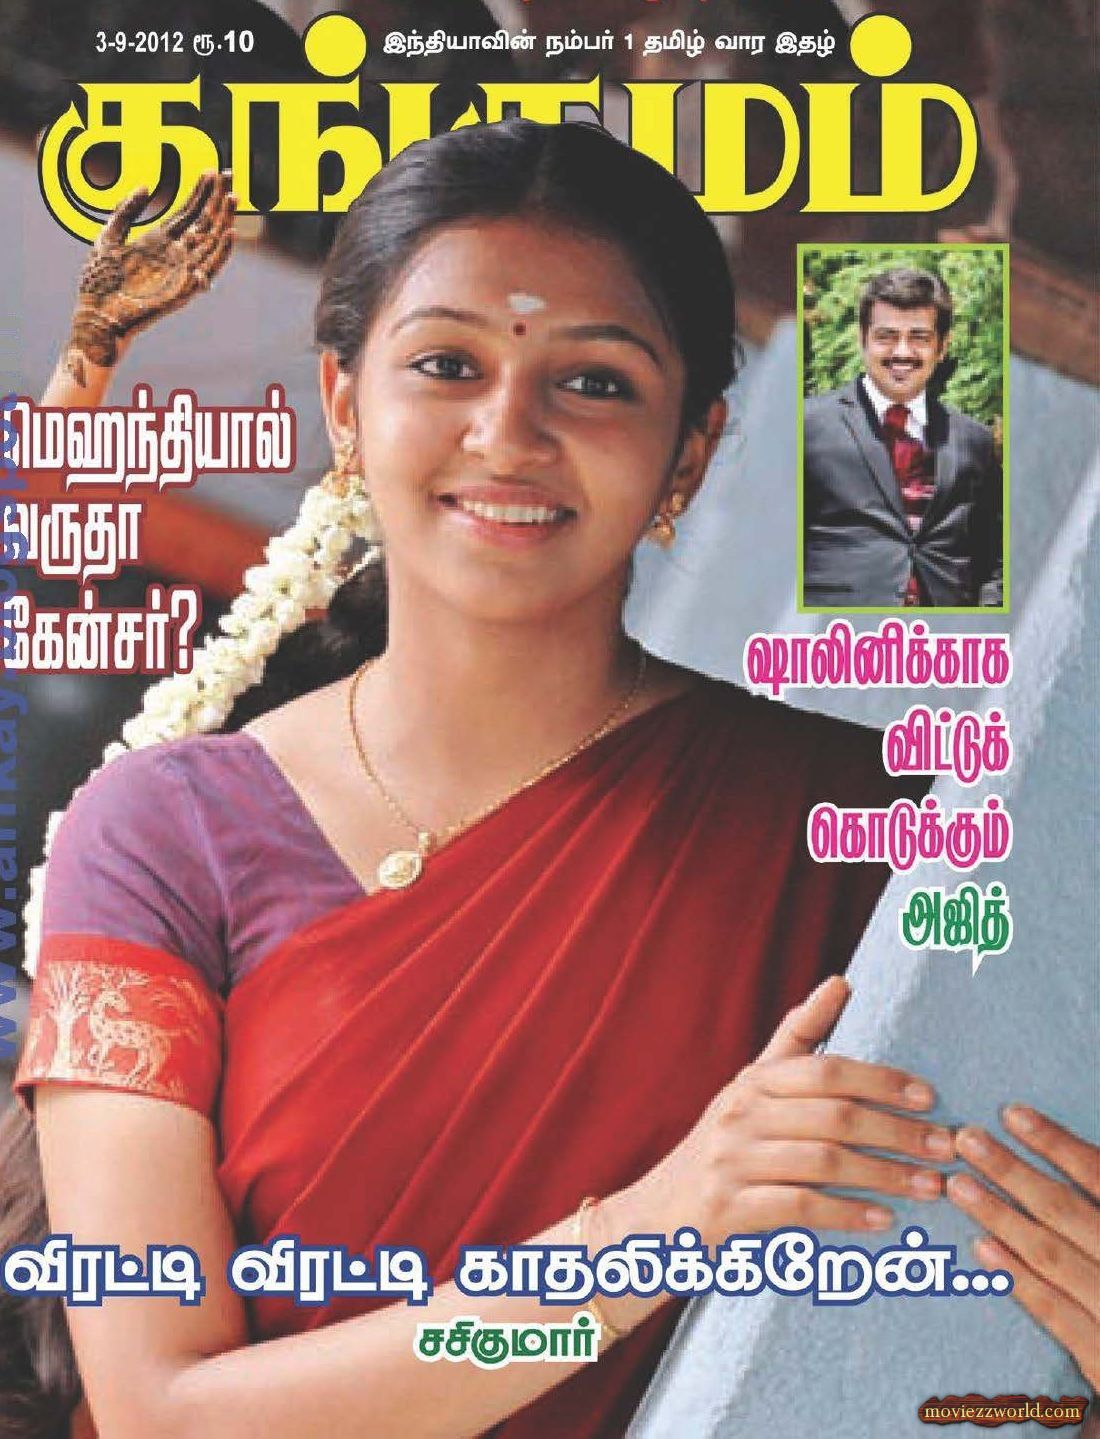 Tamil cinema magazines free download / Kala paisa pyar drama